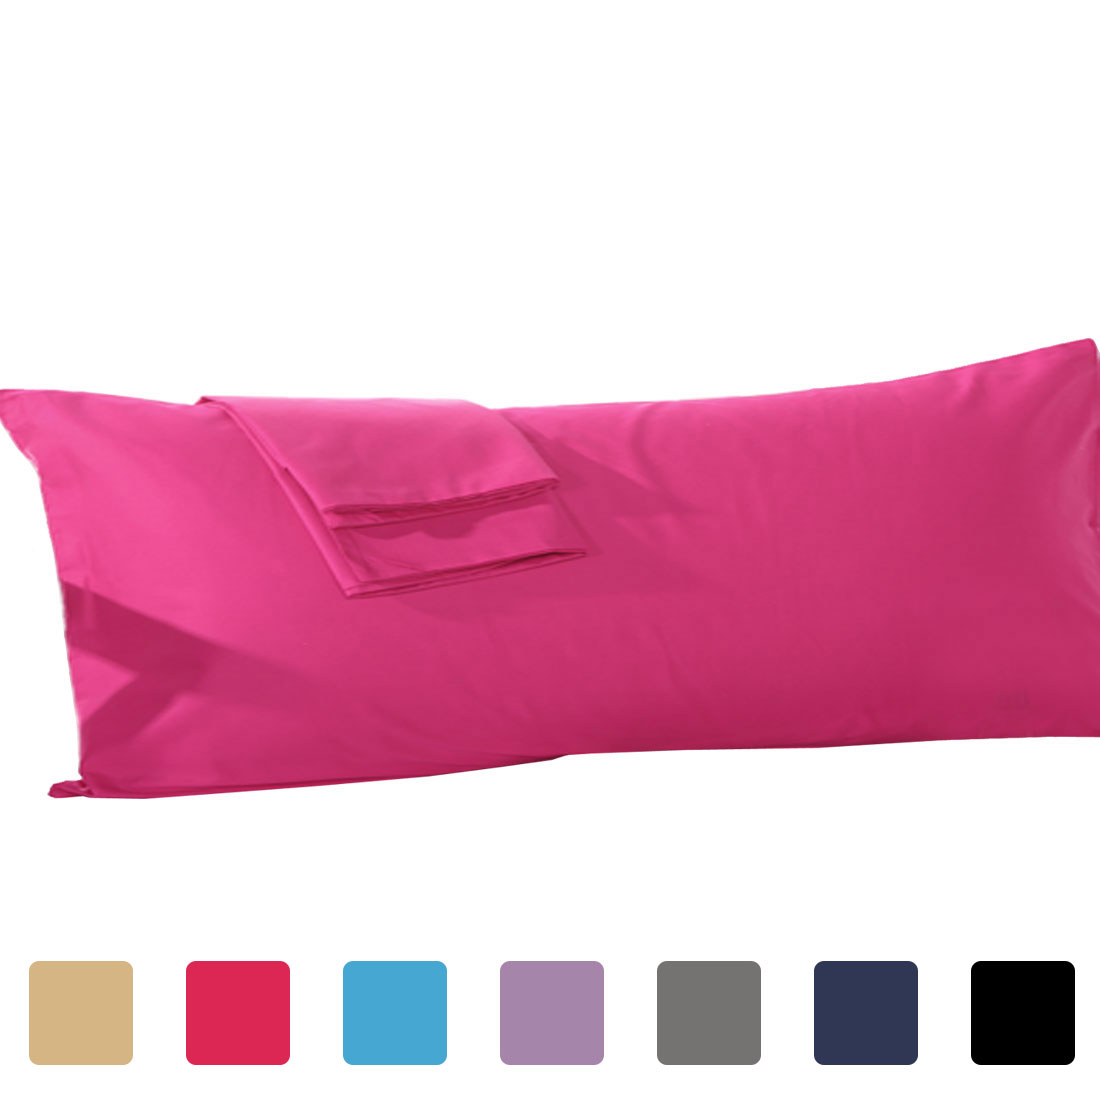 pillowshams pillowcase cover pillow cases body size 250tc cotton red 21 x 55 inch